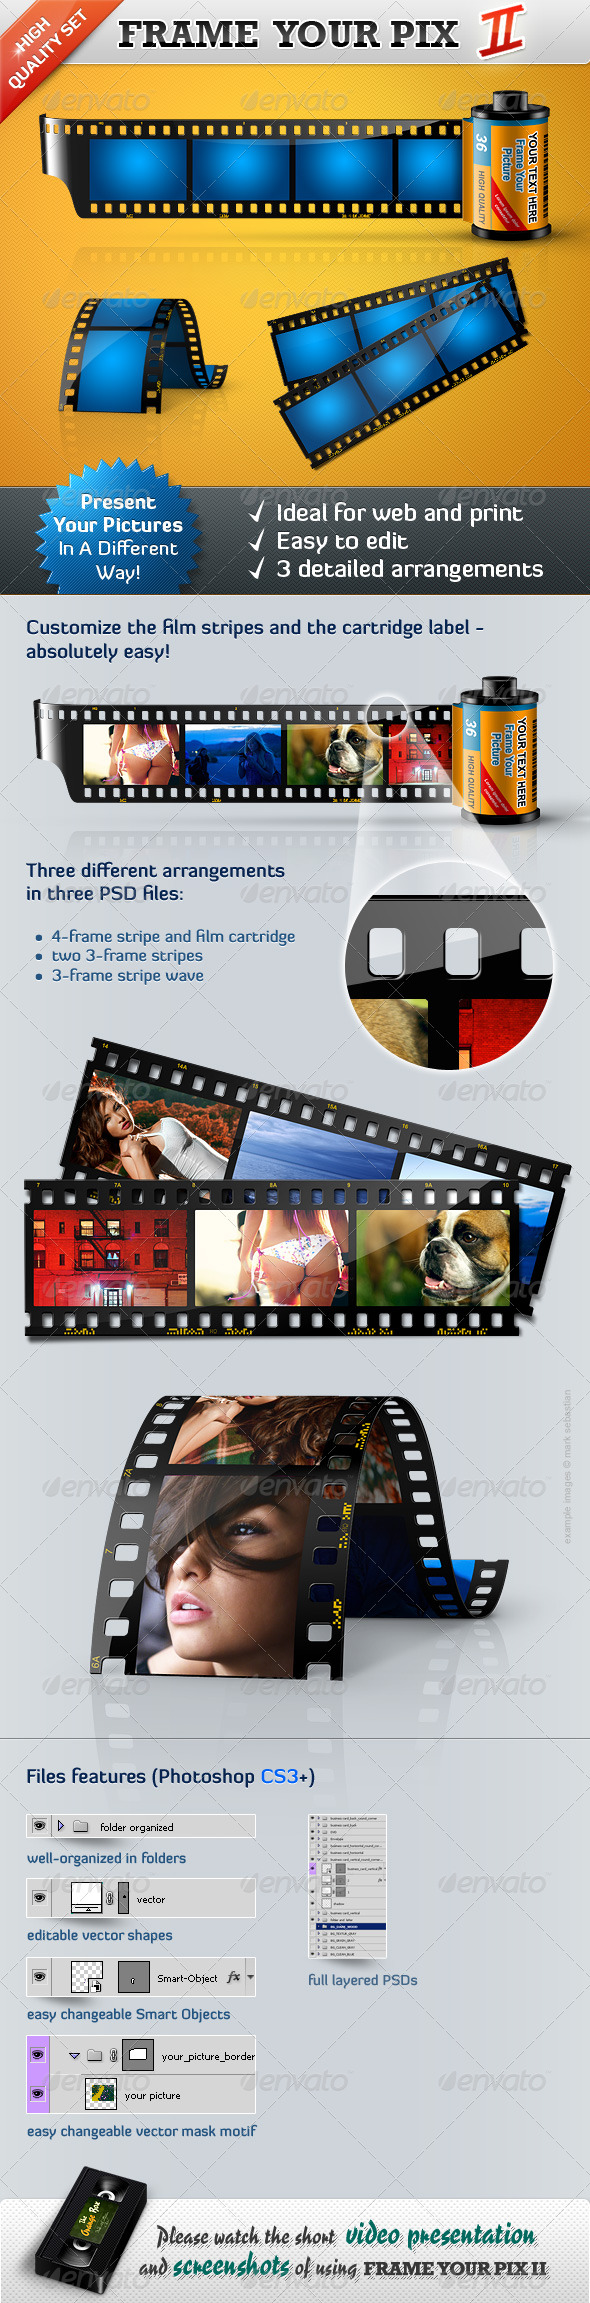 GraphicRiver Frame Your Pictures II Film Stripes 223081